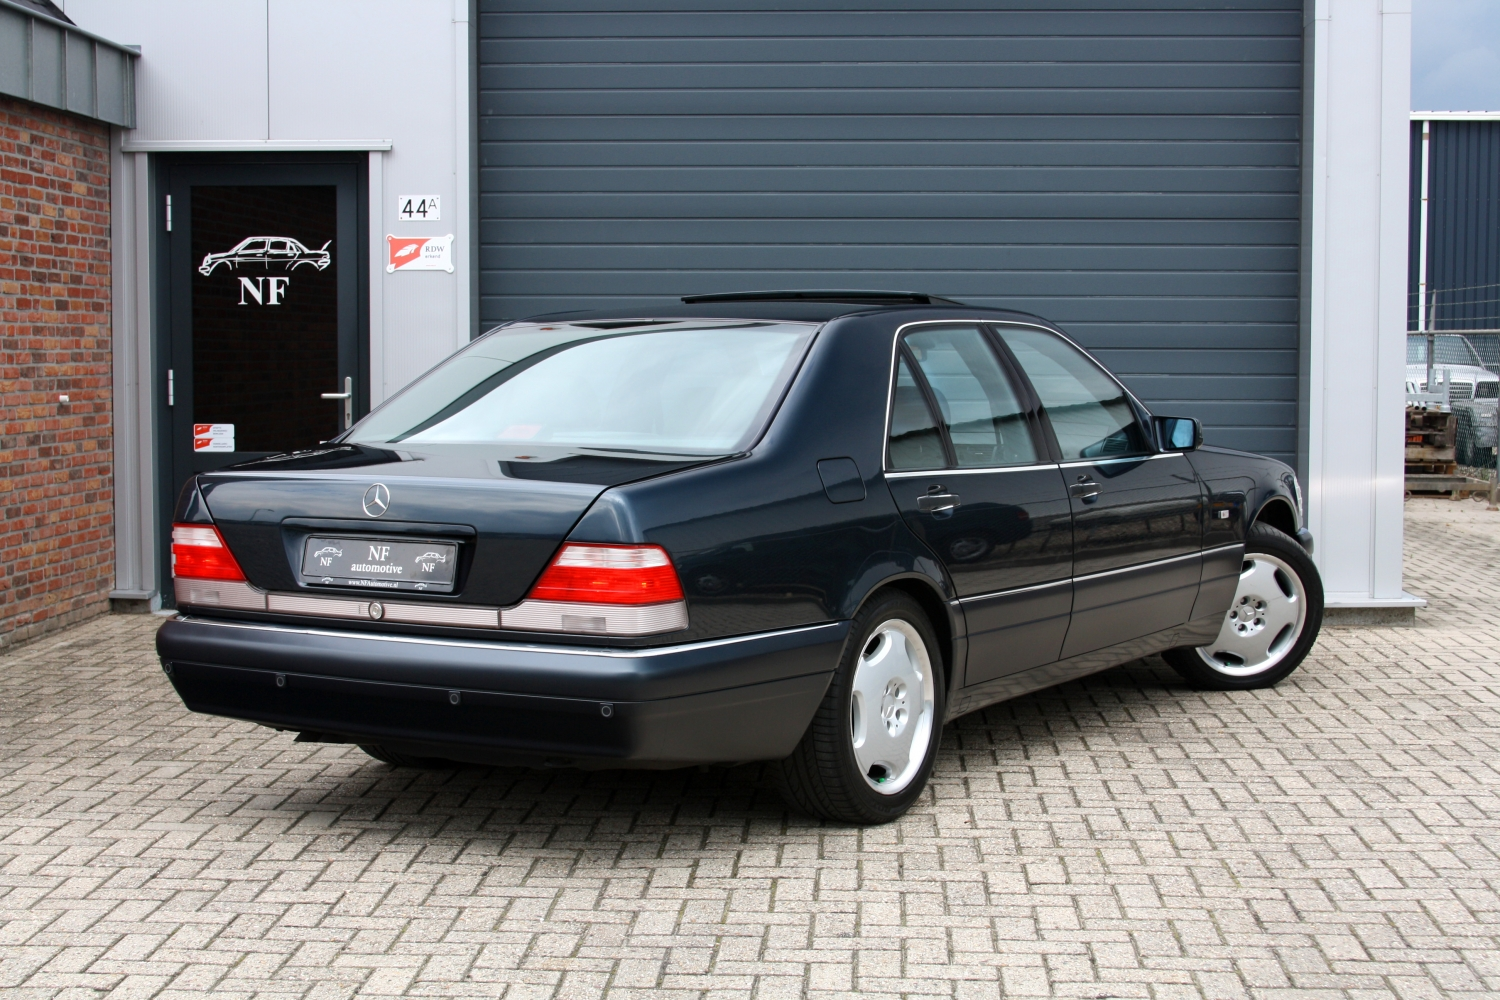 Mercedes W140 titivation - Page 1 - Readers' Cars - PistonHeads